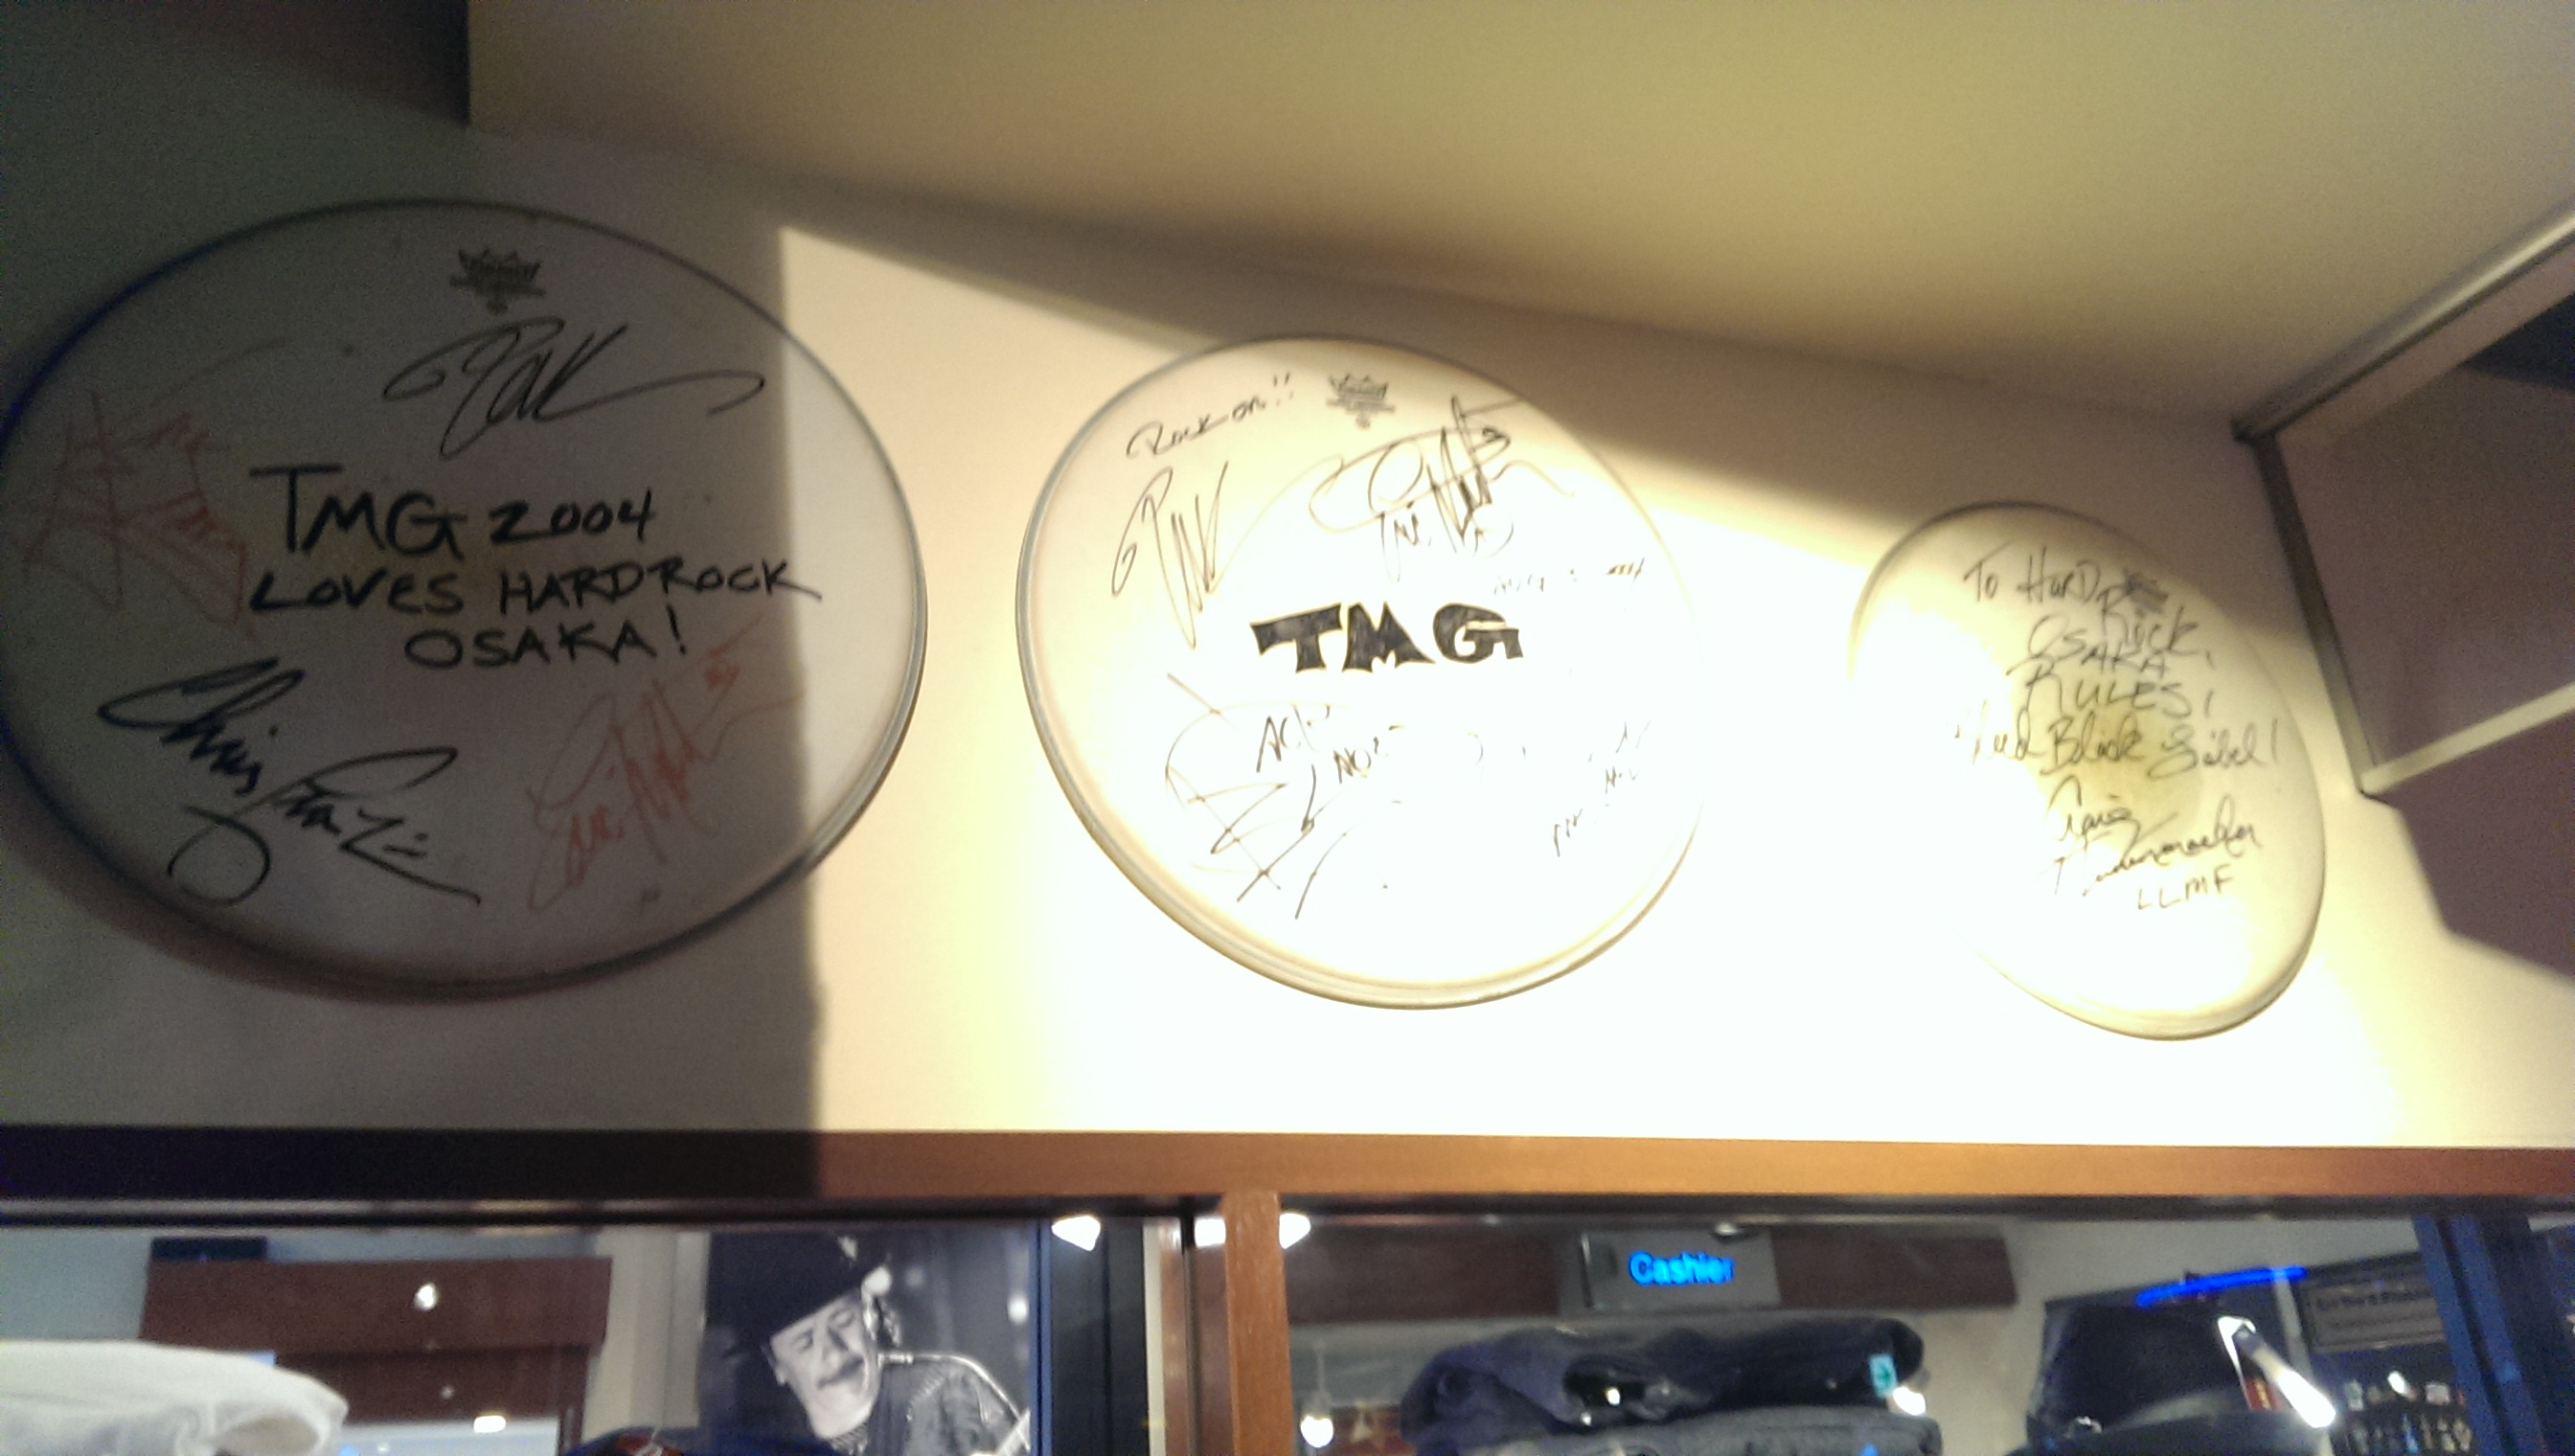 Autographs by TMG members